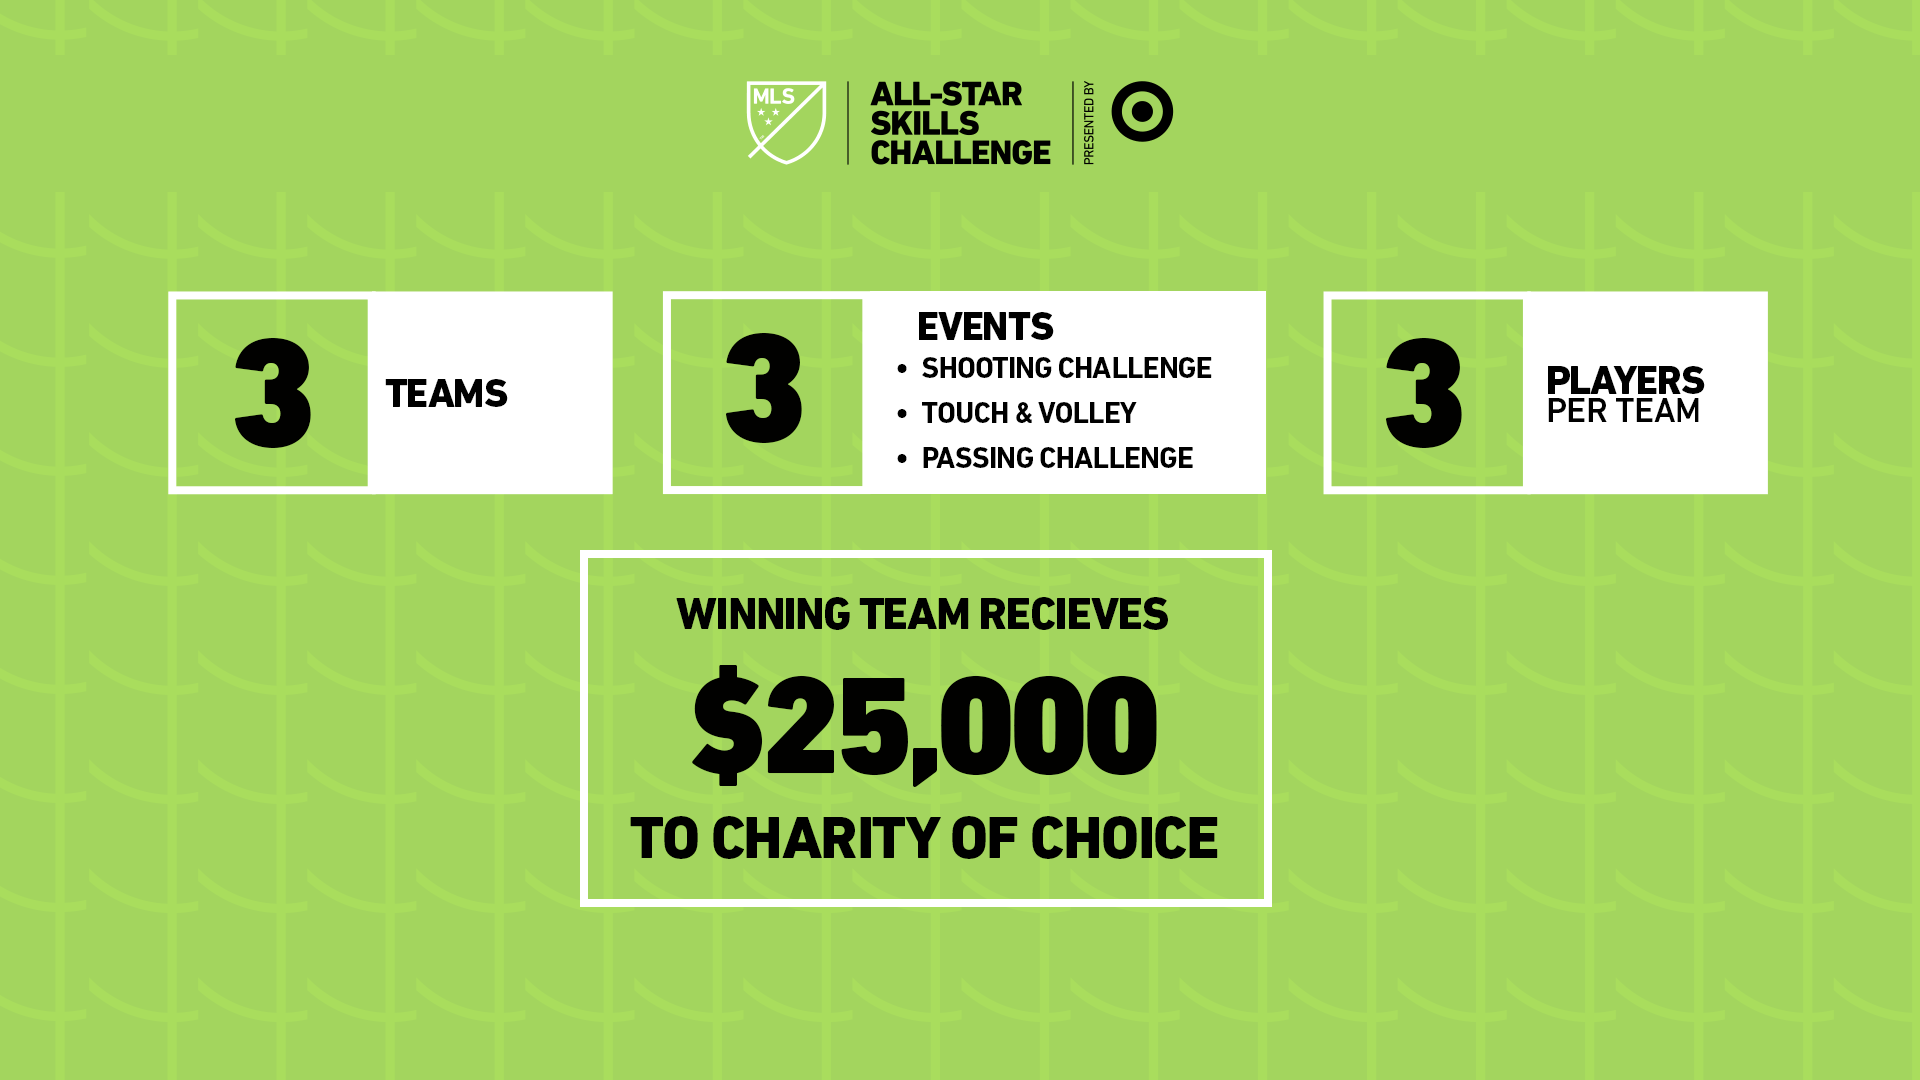 2019 MLS All Star Skills Challenge presented by Target MLSsoccercom 1920x1080